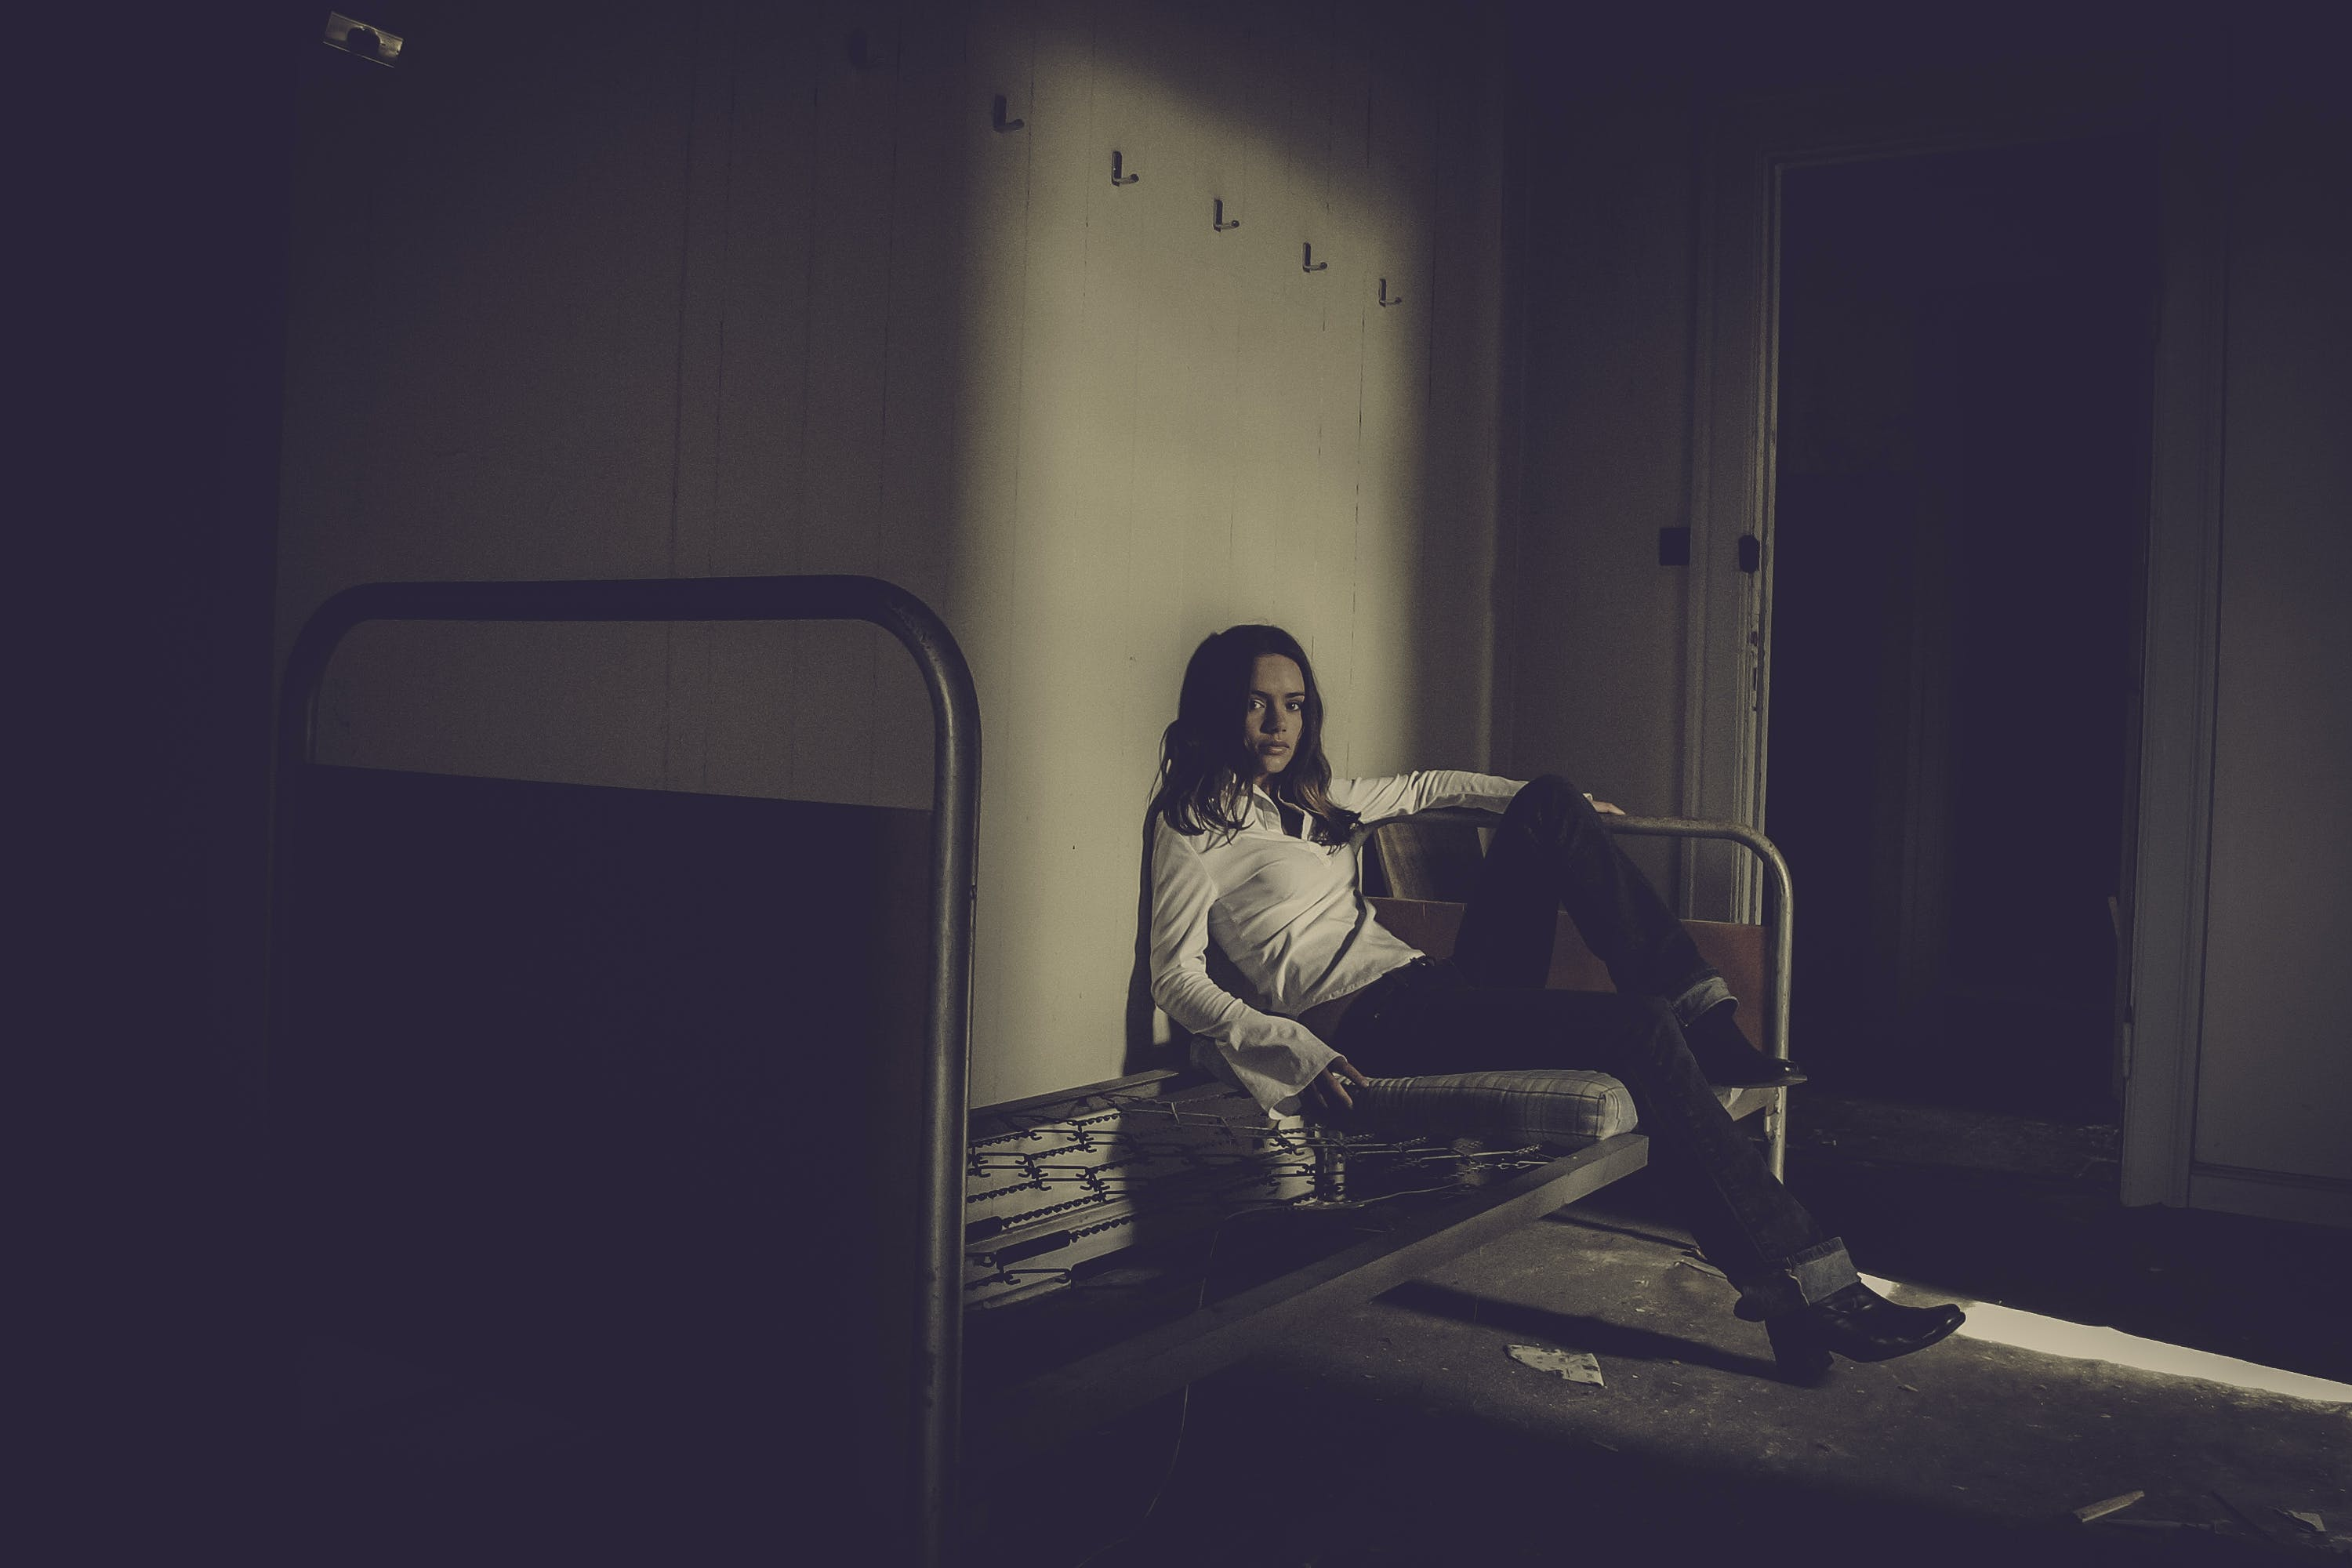 Woman Sitting on Bed Inside Empty Room